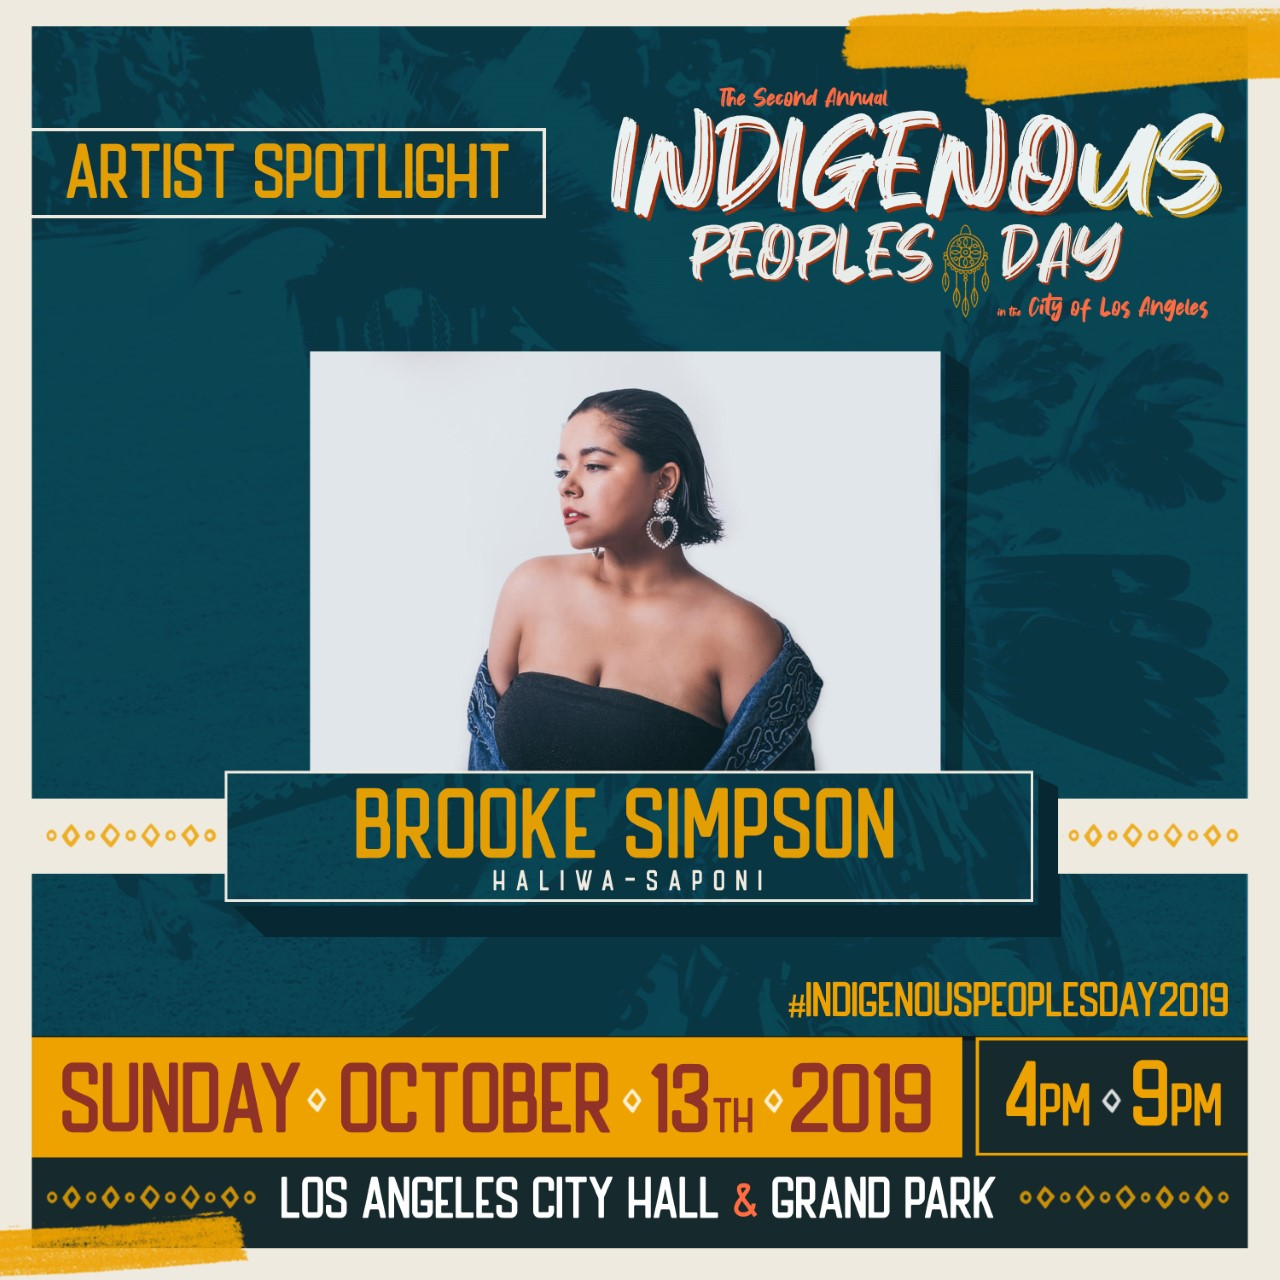 Native American Artists Brooke Simpson, PJ Vegas & Redbone to Perform at Indigenous Peoples Day Celebration on Oct. 13 in LA